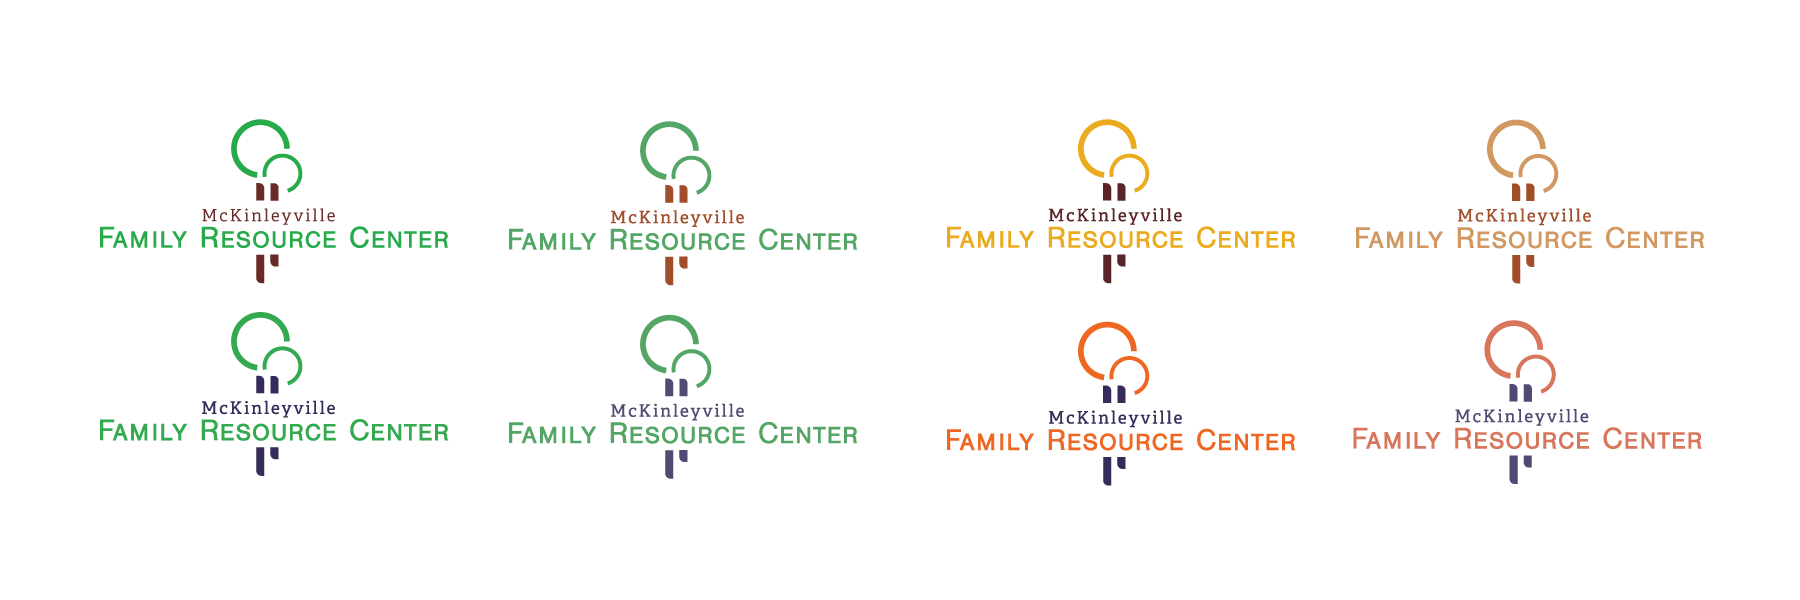 Color variations for McKinleyville Family Resource Center